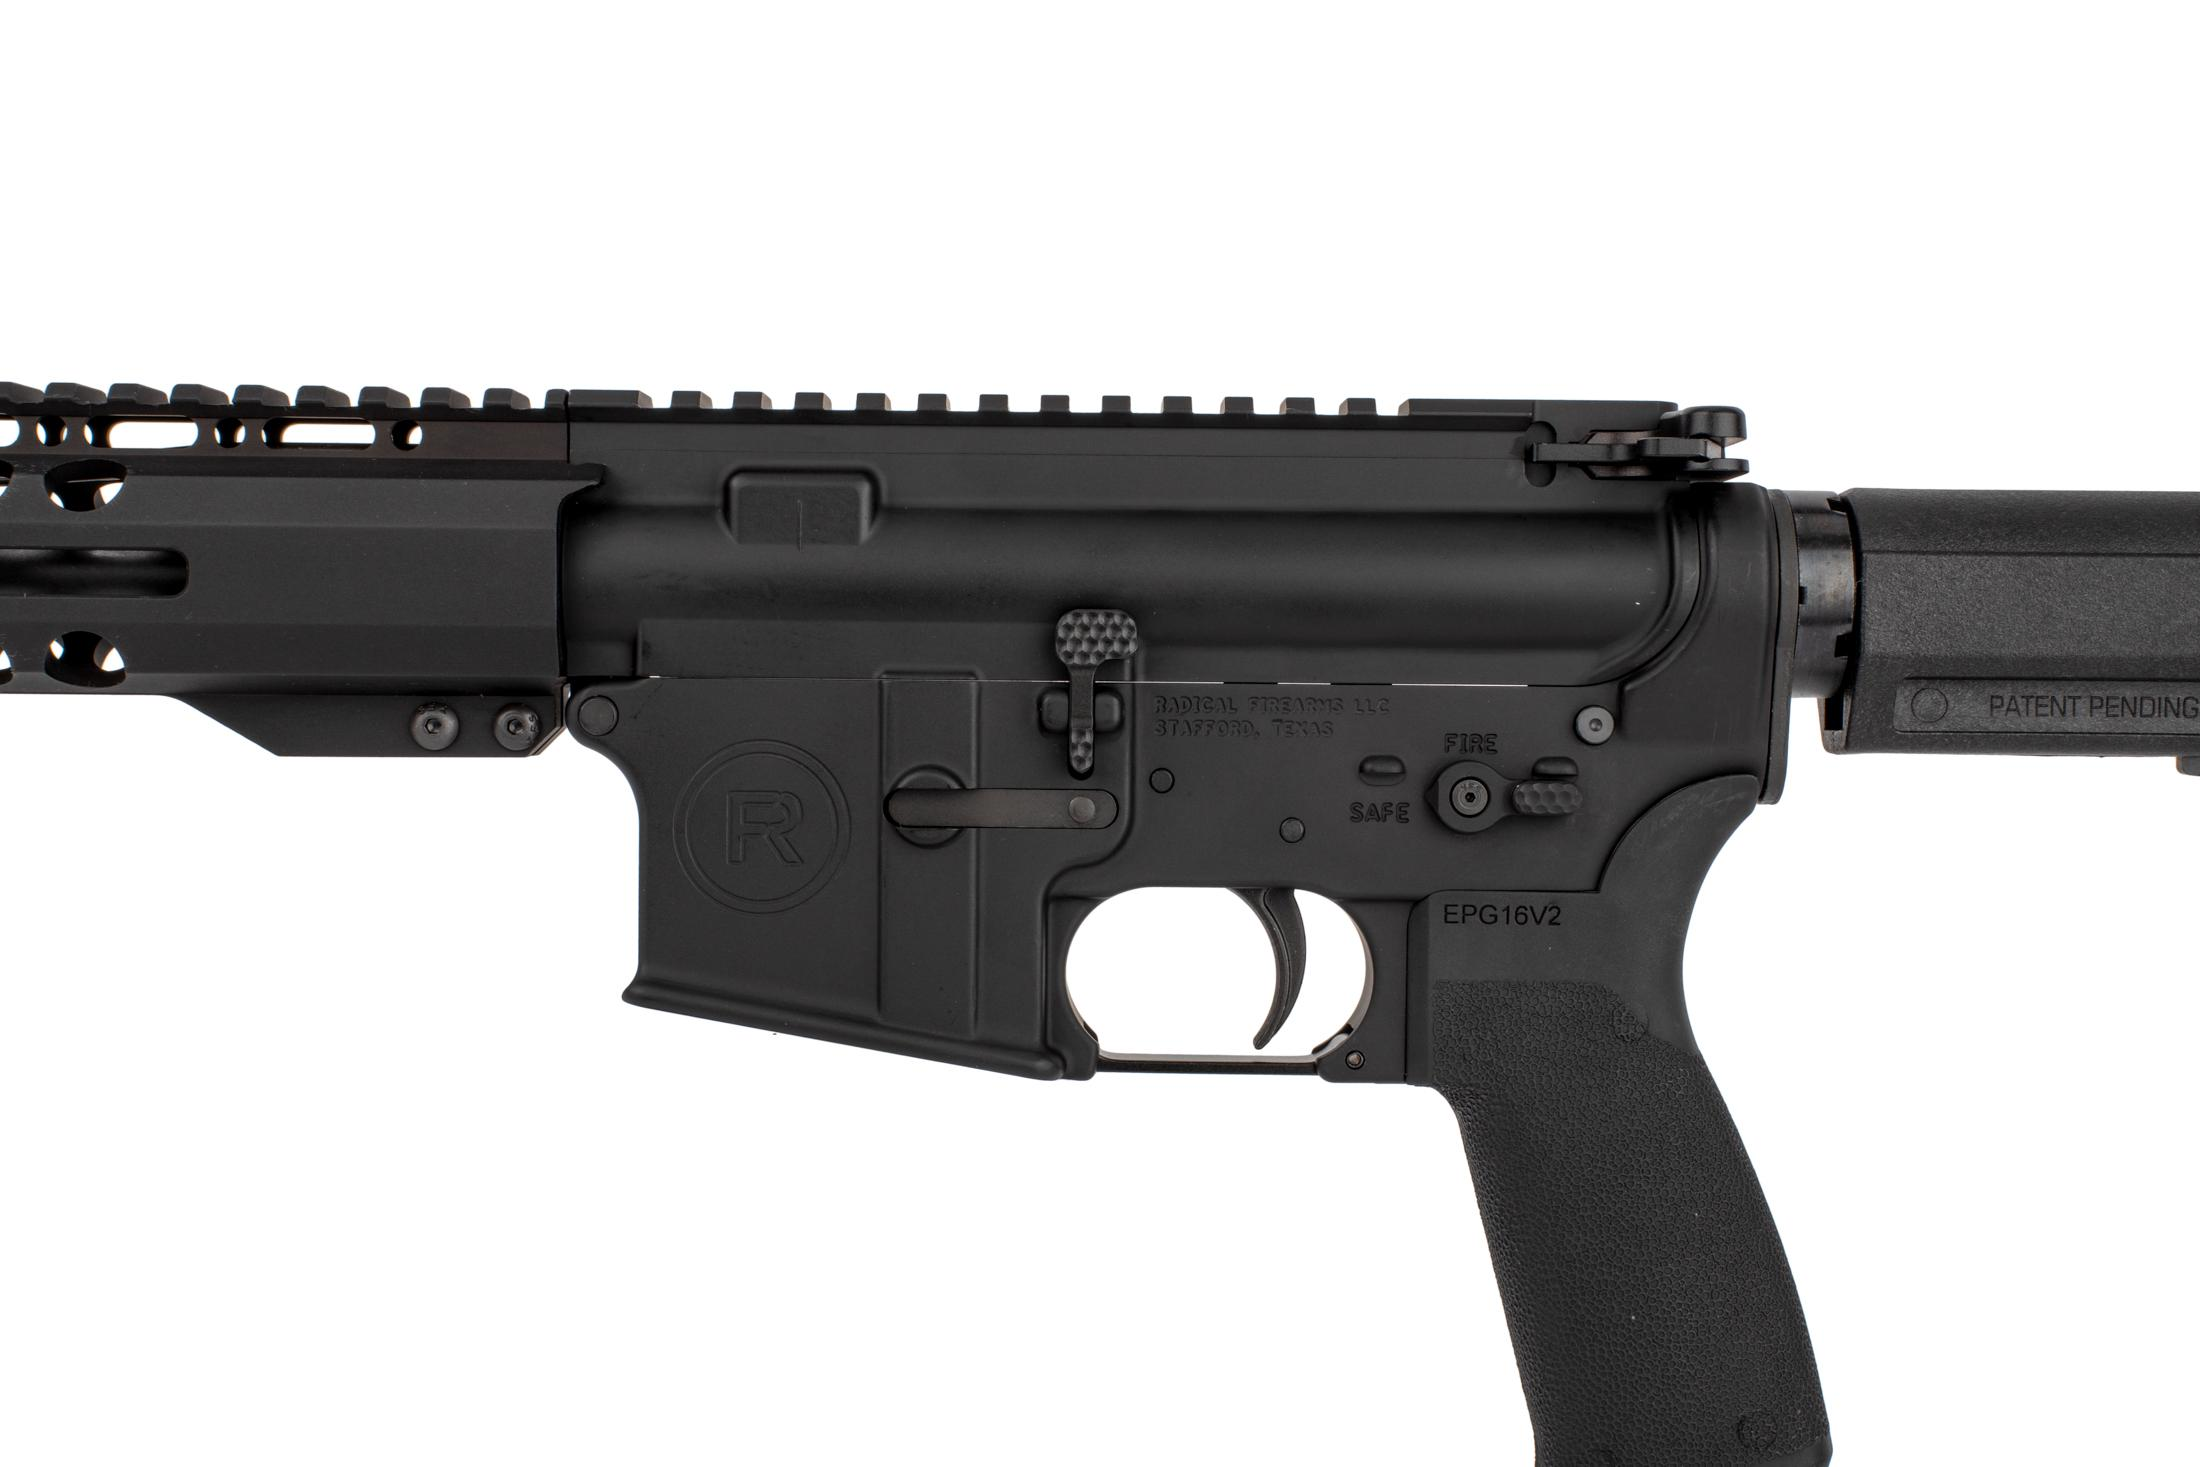 Radical Firearms 7.5 M4 barreled AR pistol with PA exclusive M-LOK rail Shockwave 2M brace, and enhanced bolt catch